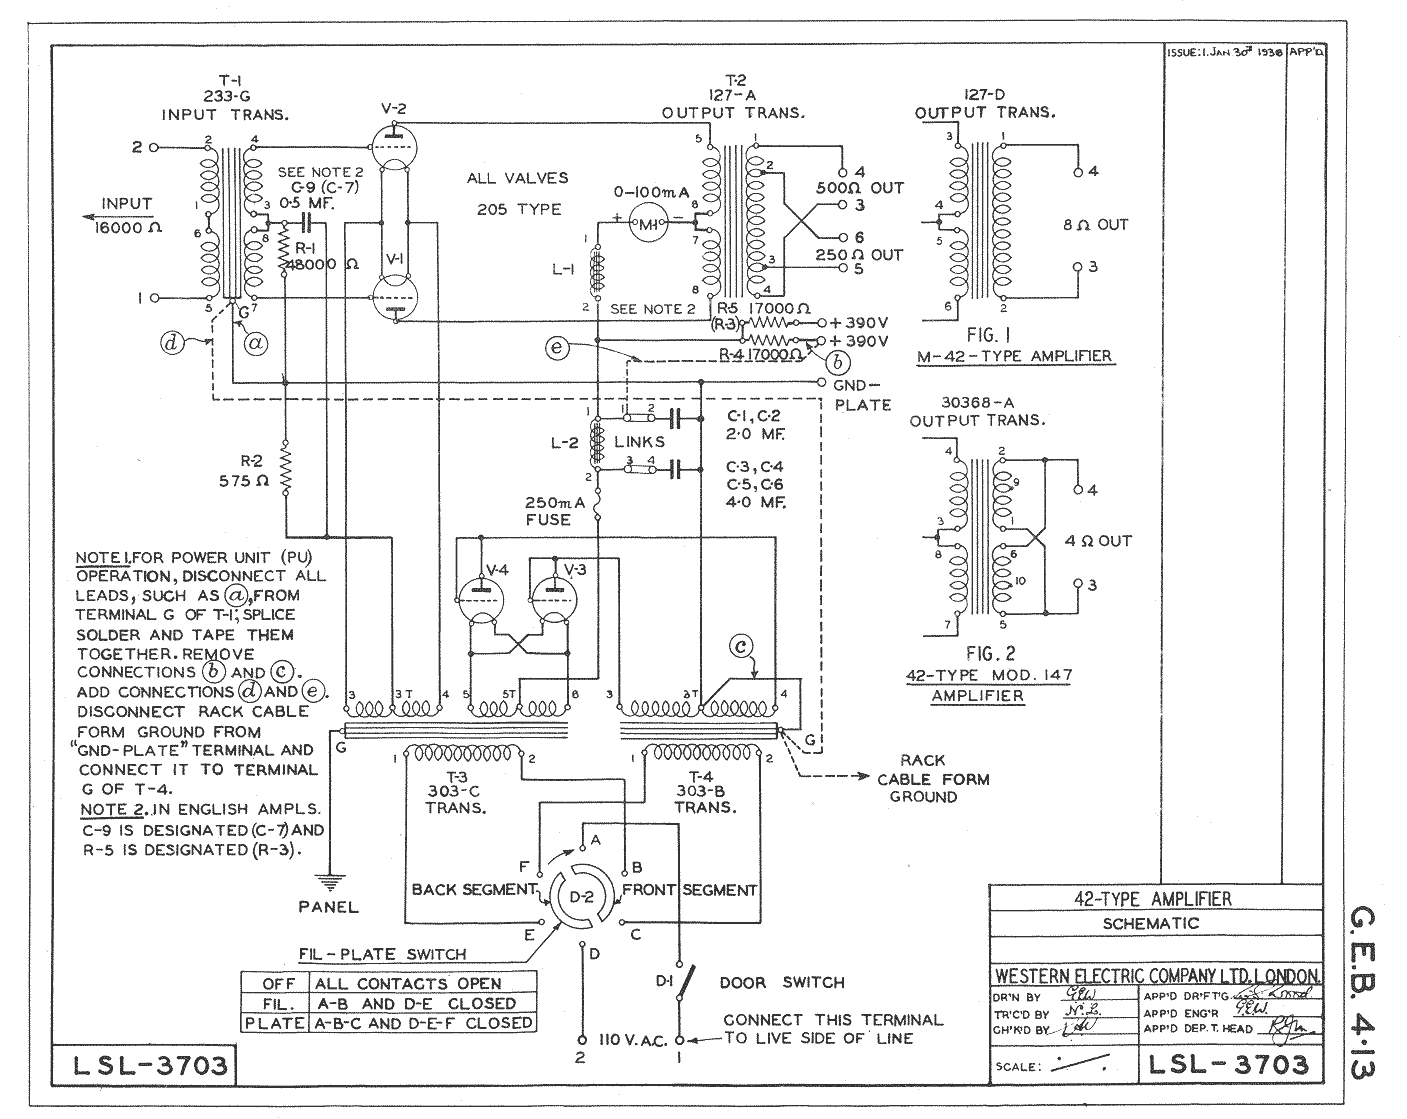 Audio Power Amplifier Schematics 4w 8 Watt Amp 100 Amplifiers Part 1 1916 45 Lilienthal Engineering Western Electric 42 Original Schematic